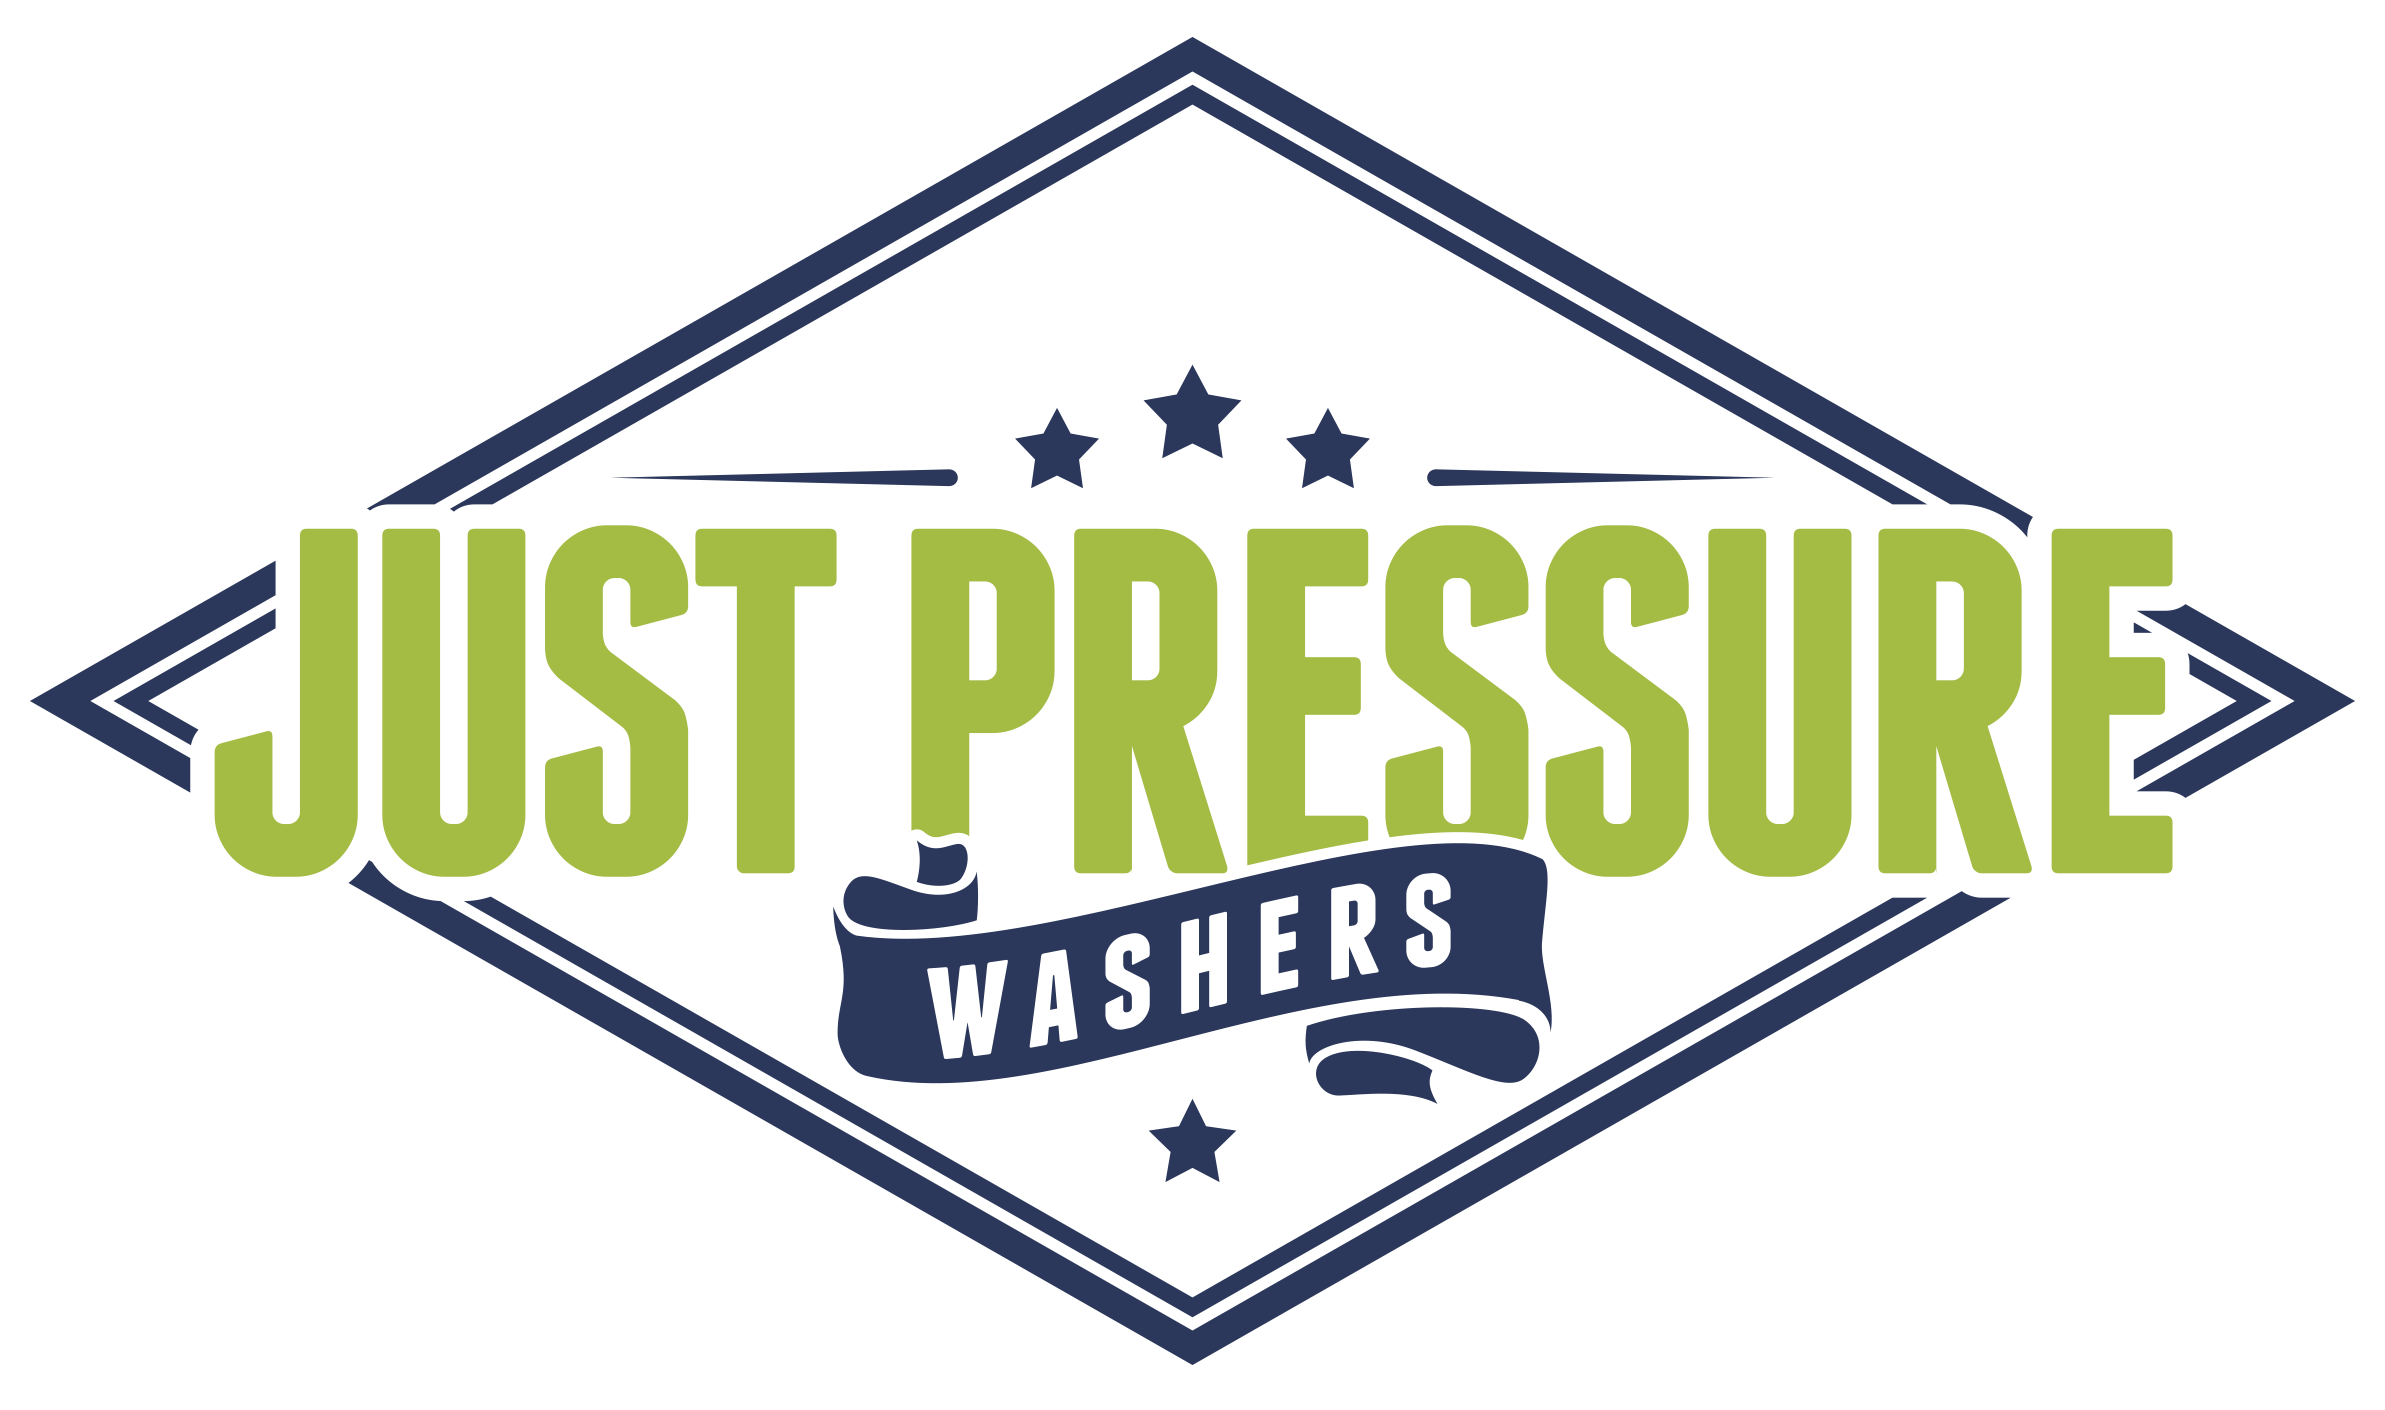 What Is The Best Pressure Washer Detergent? | Just Pressure